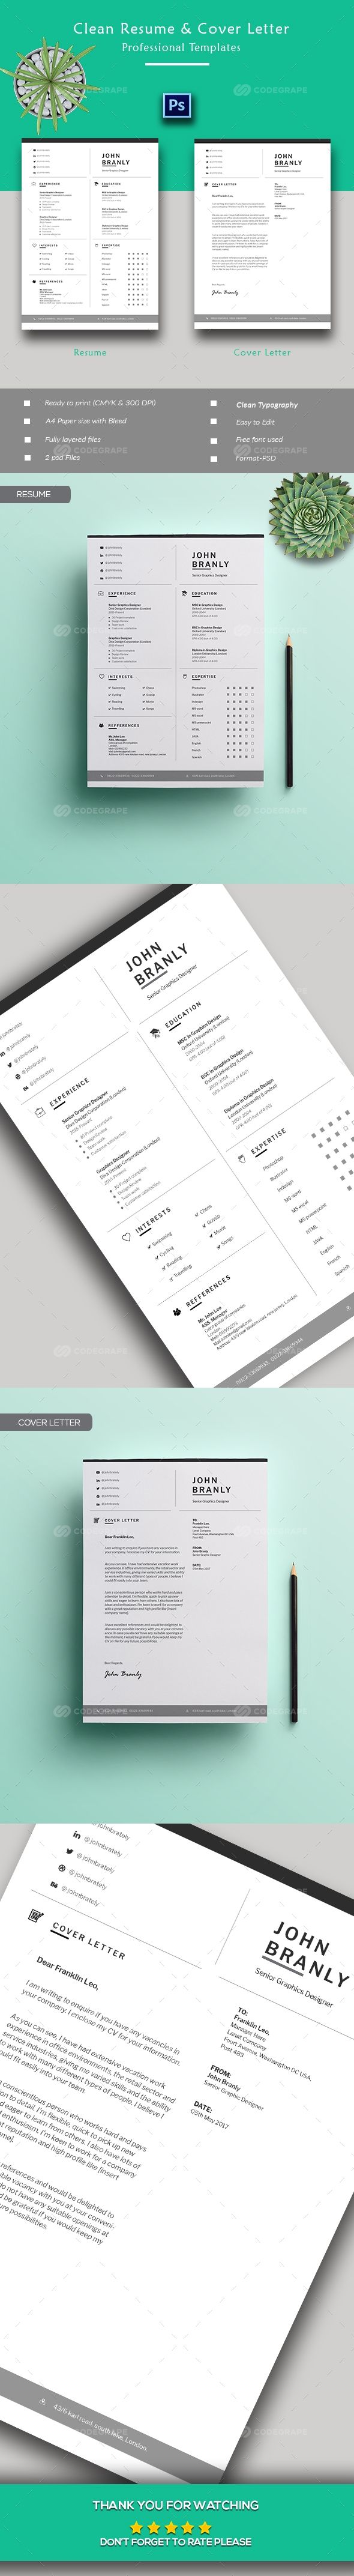 Creative Resume + Cover Letter Template Resume cover